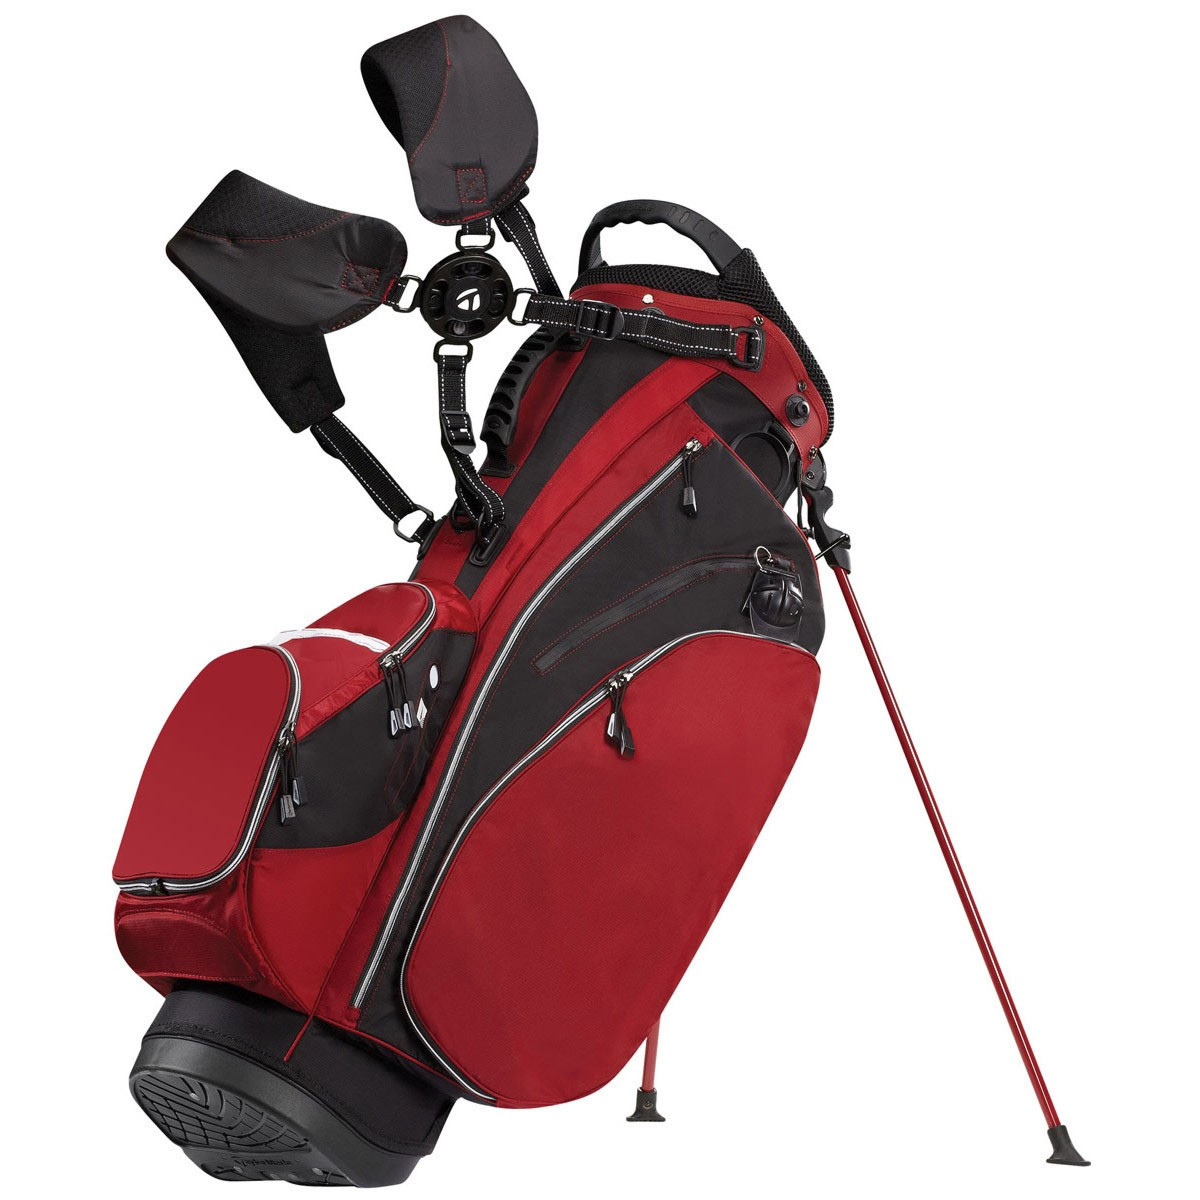 TaylorMade 2012 Approach Stand Bag - TaylorMade Golf